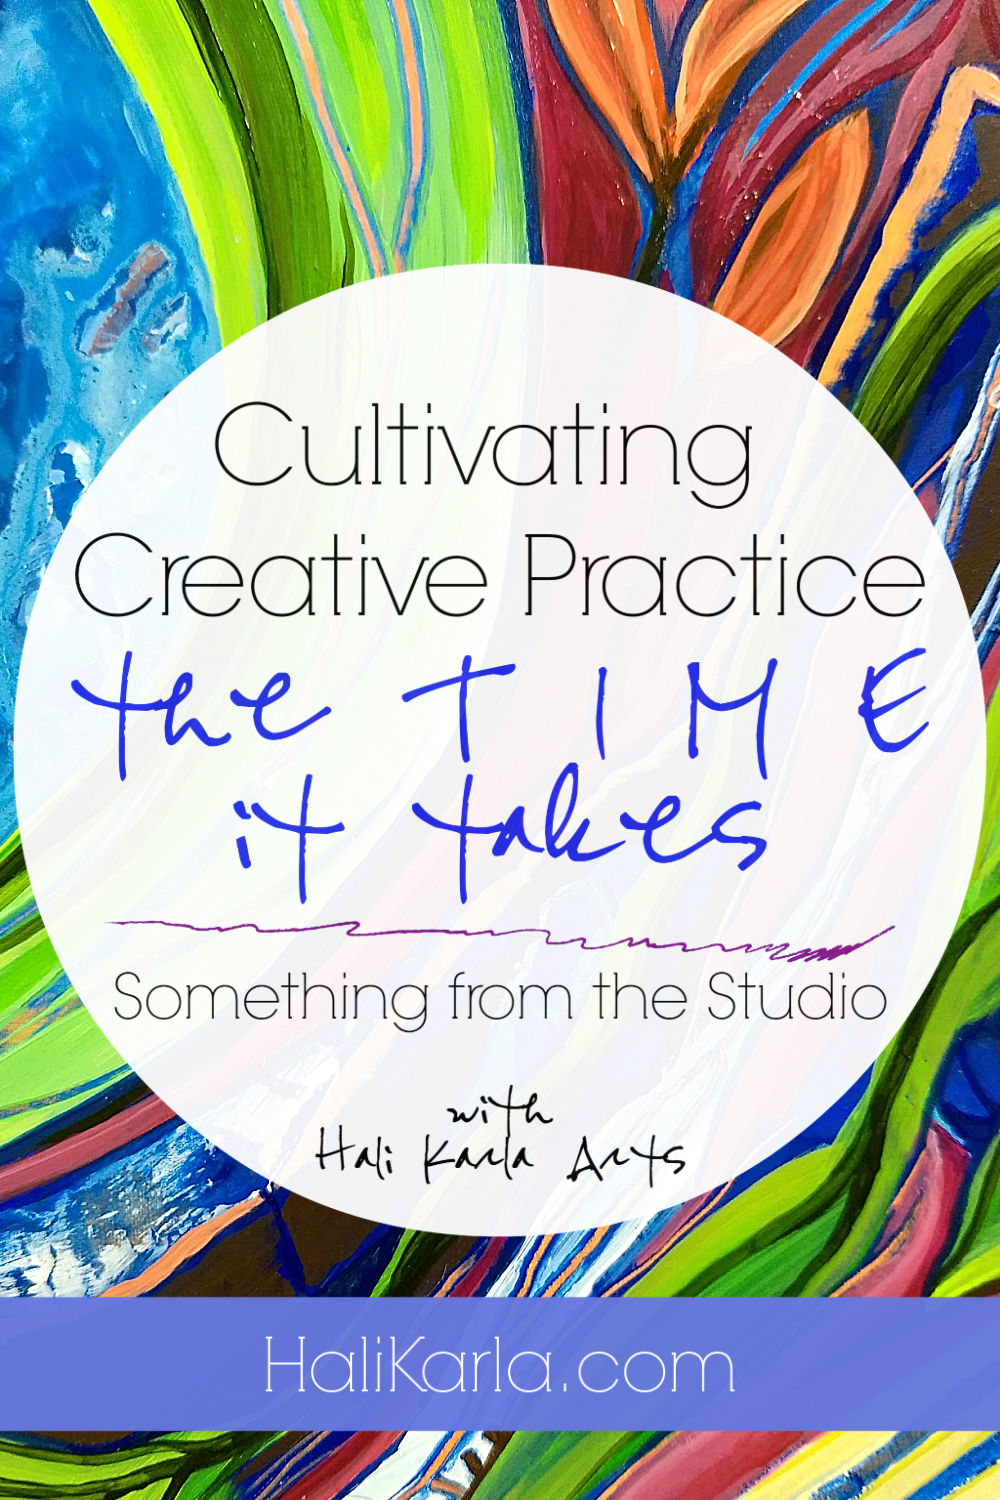 intuitive painting art demo with musing on Creative Practice | Hali Karla Arts